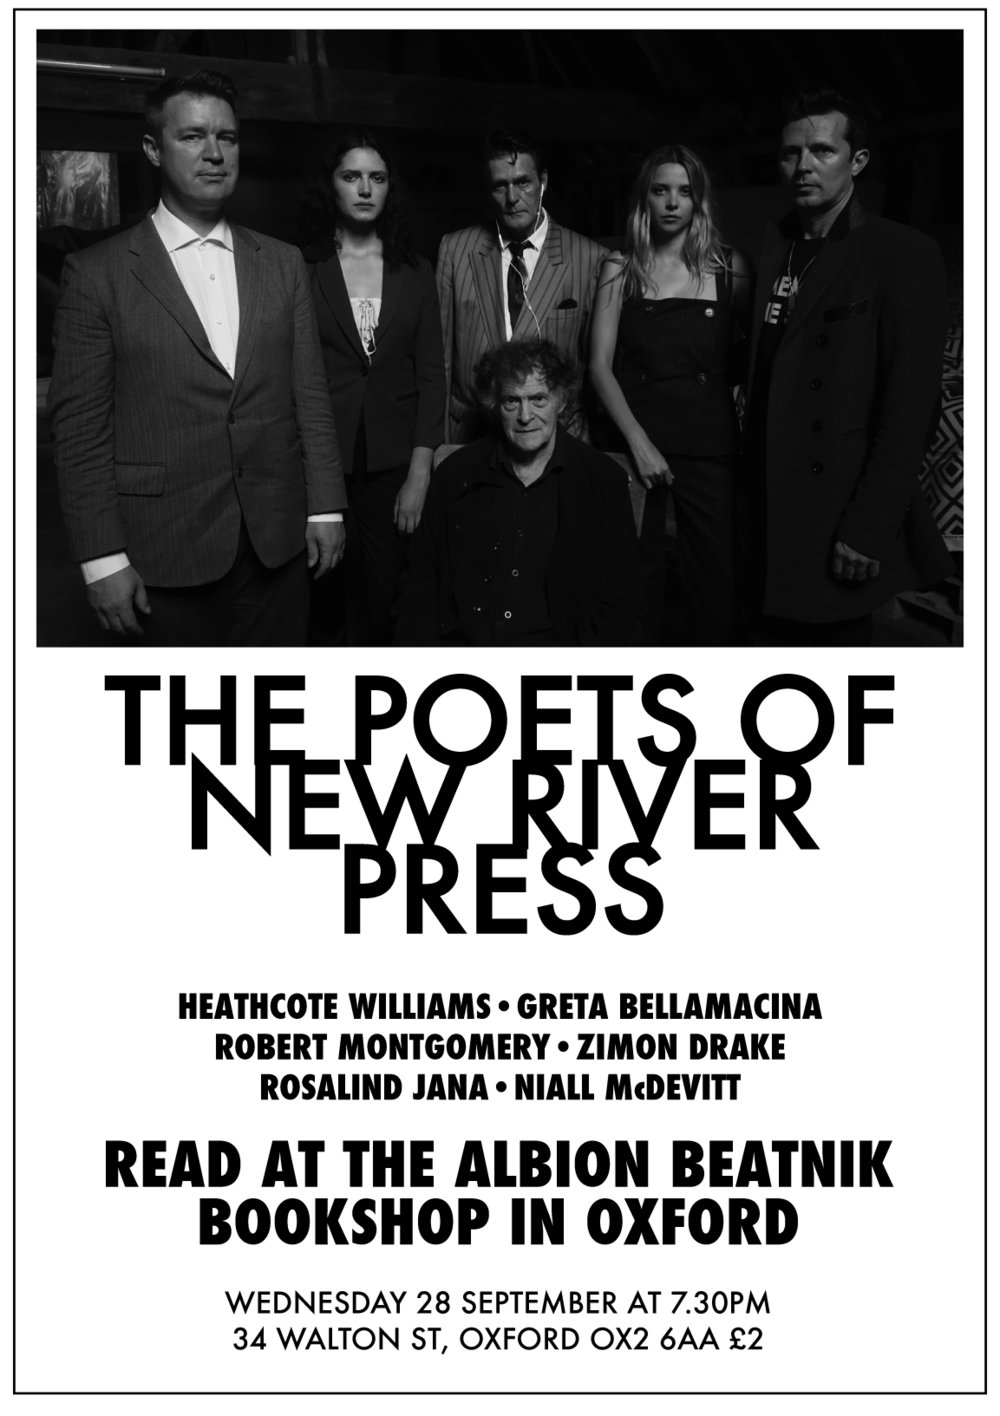 New River Press poster, with Niall Mcdevitt, Rosalind Jana, Heathcote Williams, Zimon Drake, Robert Montgomery +Greta Bellamacina